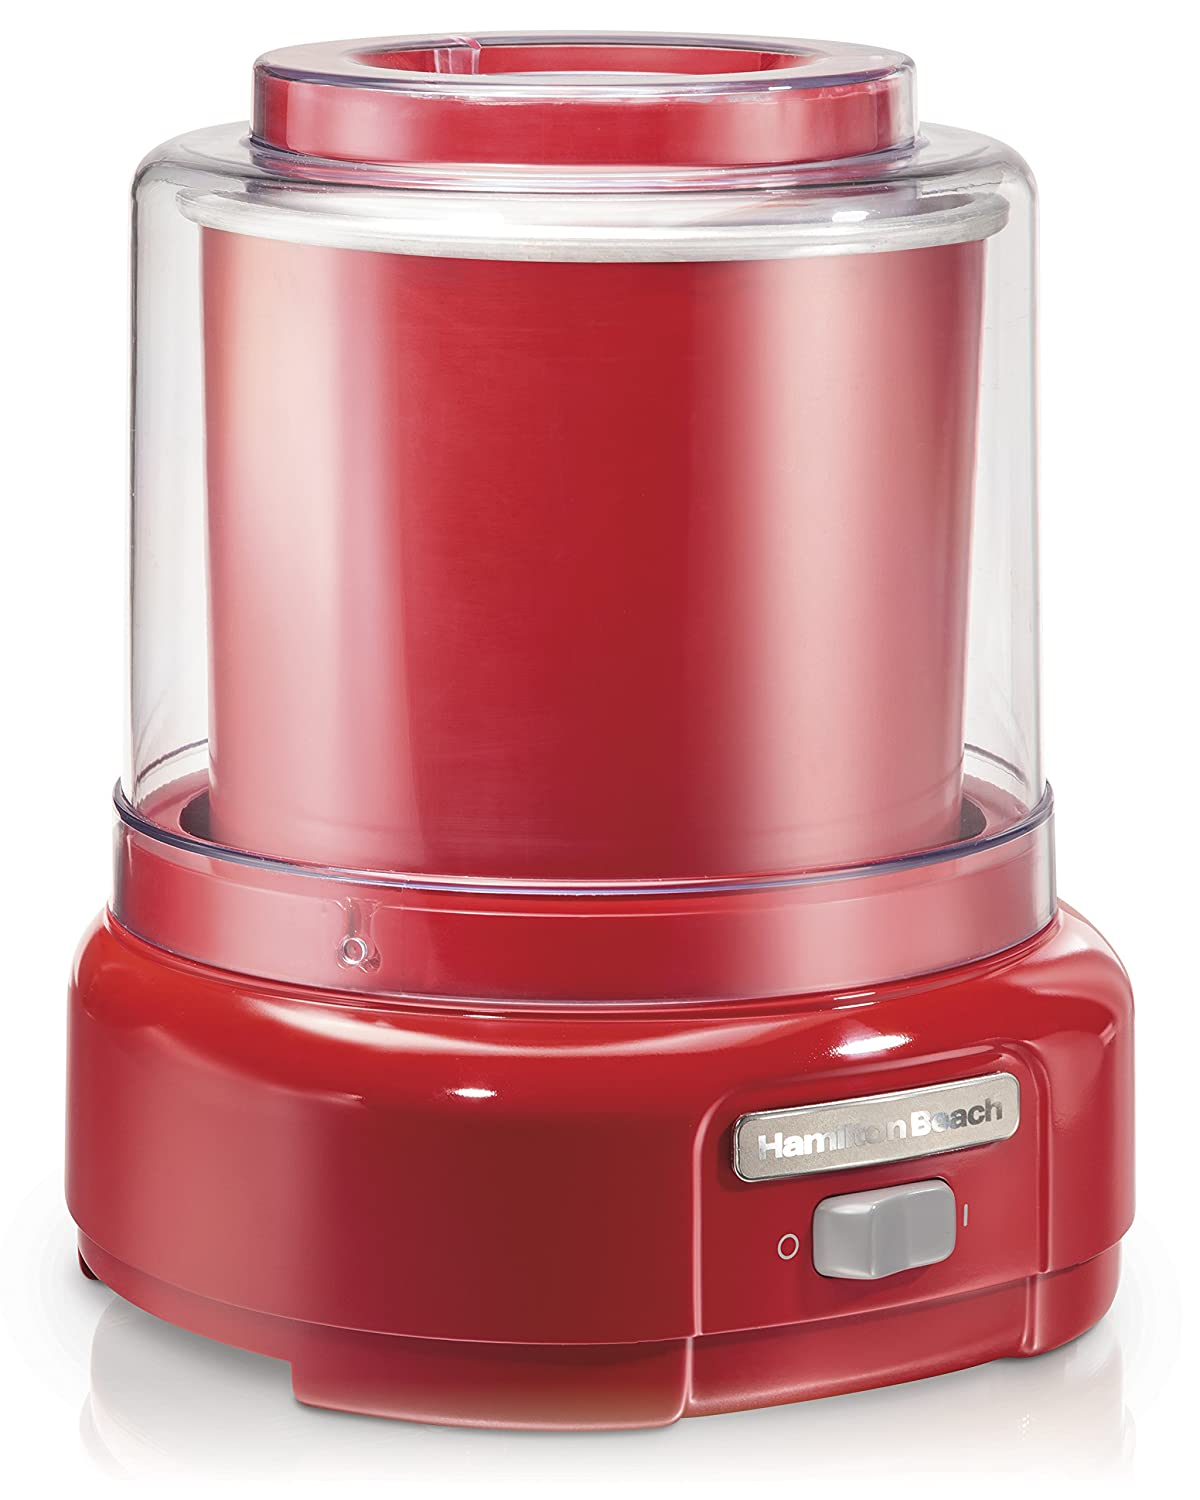 Hamilton Beach Ice Cream Maker, 1.5-Quart, Red (68881Z)